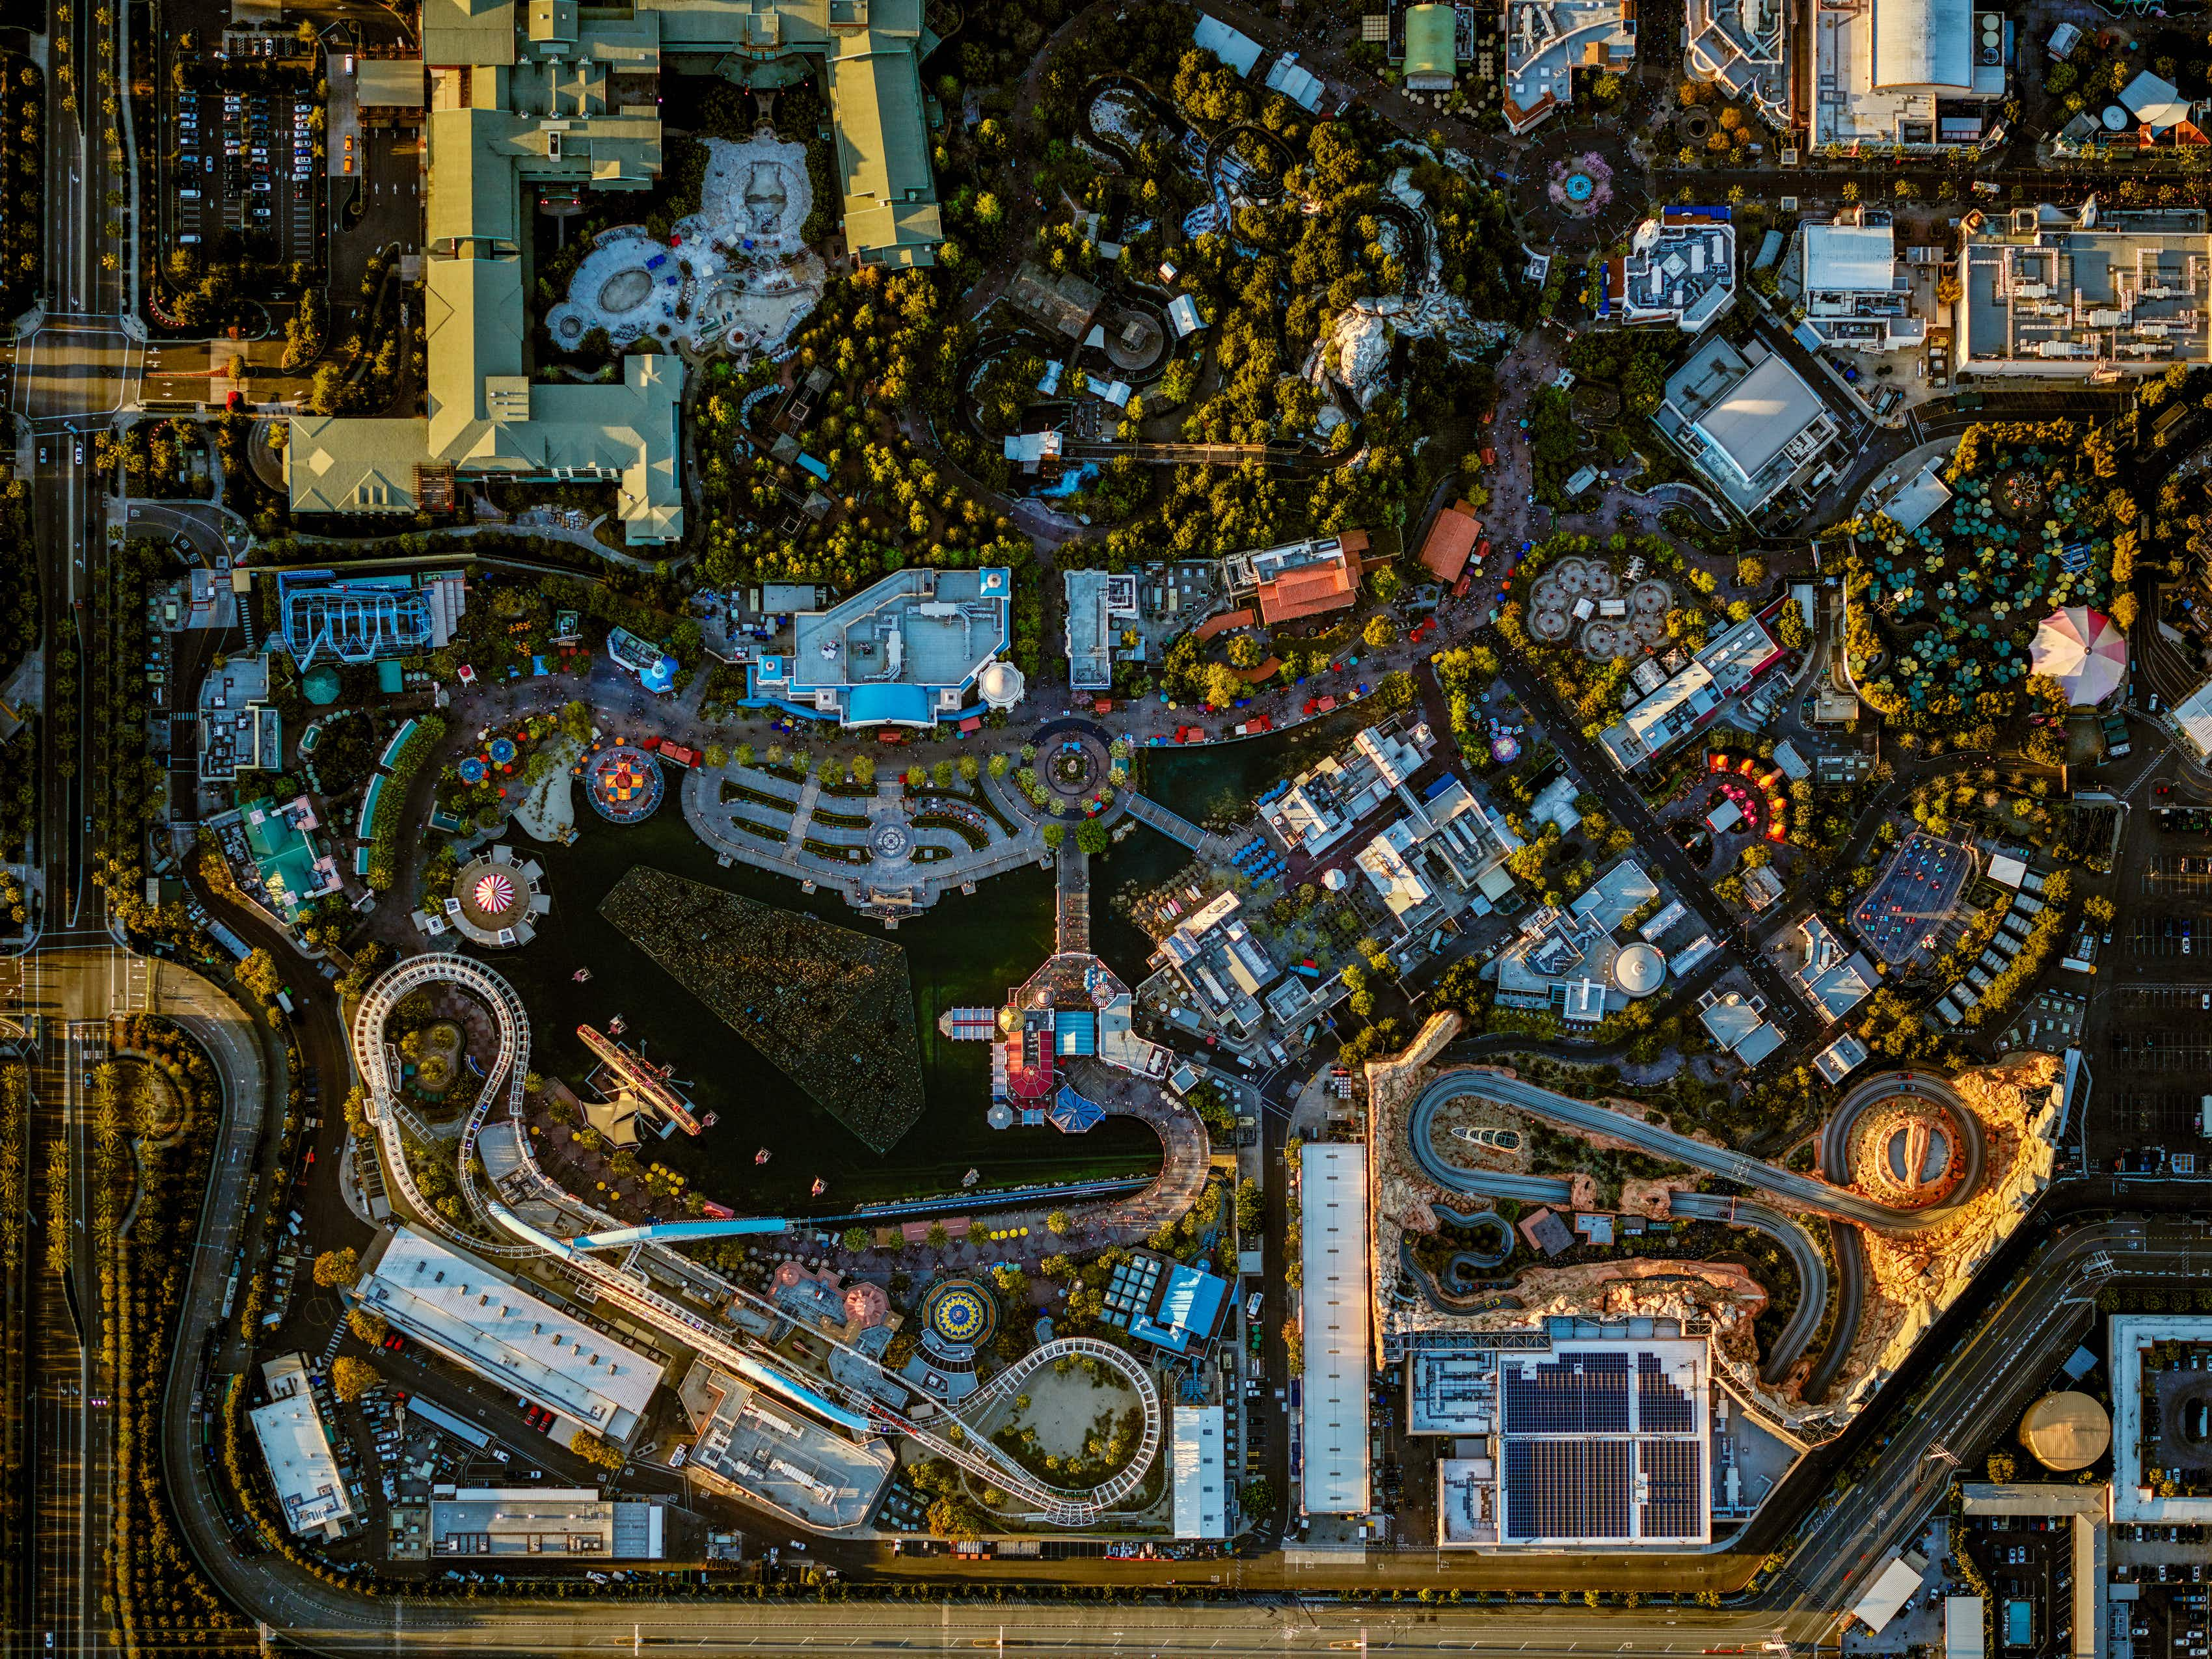 See these spectacular aerial images of Disneyland theme parks from above